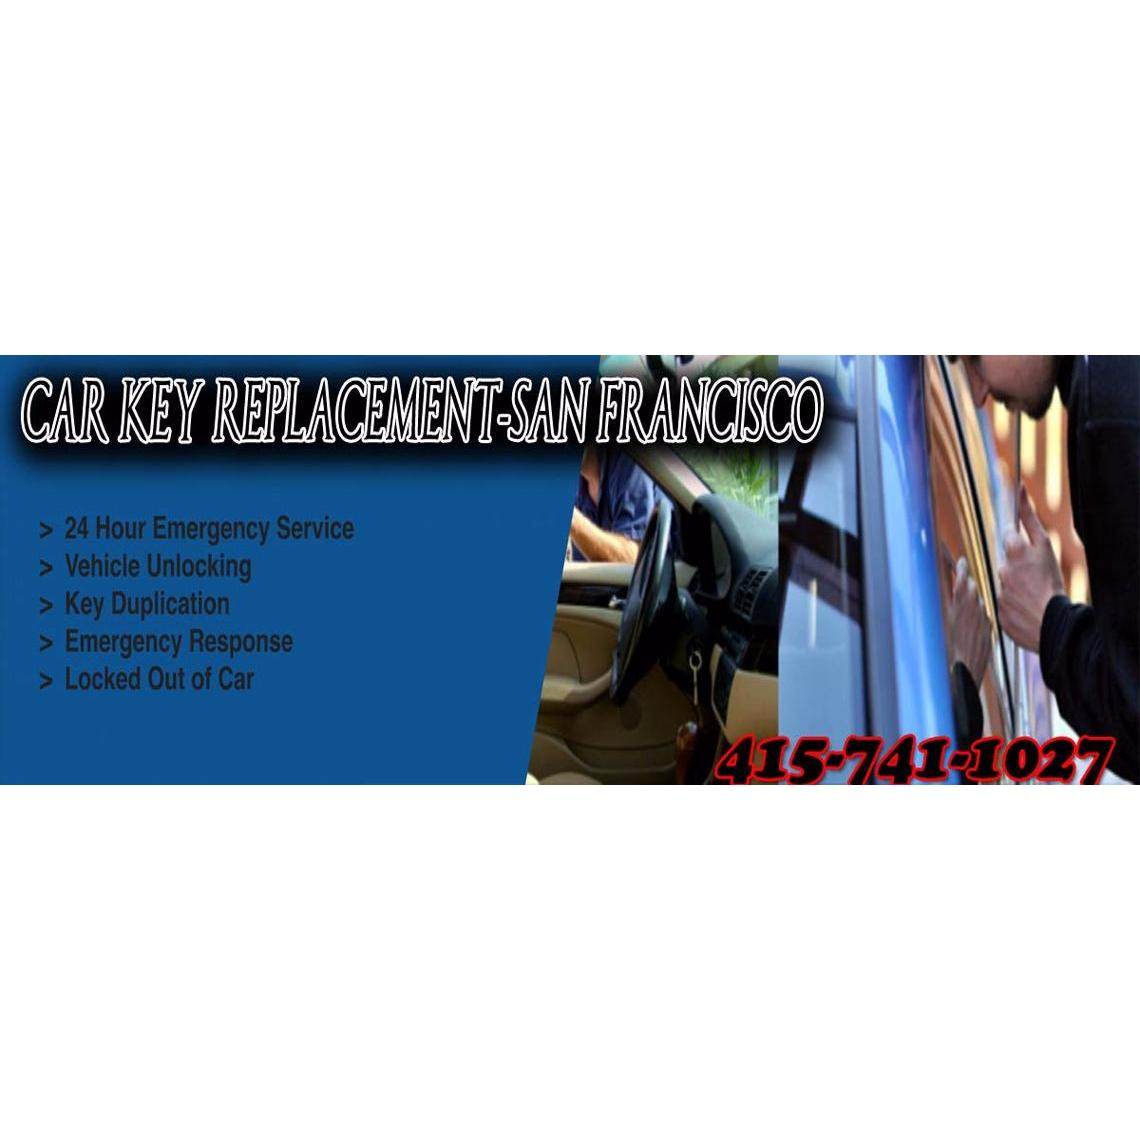 Car key Replacement San Francisco